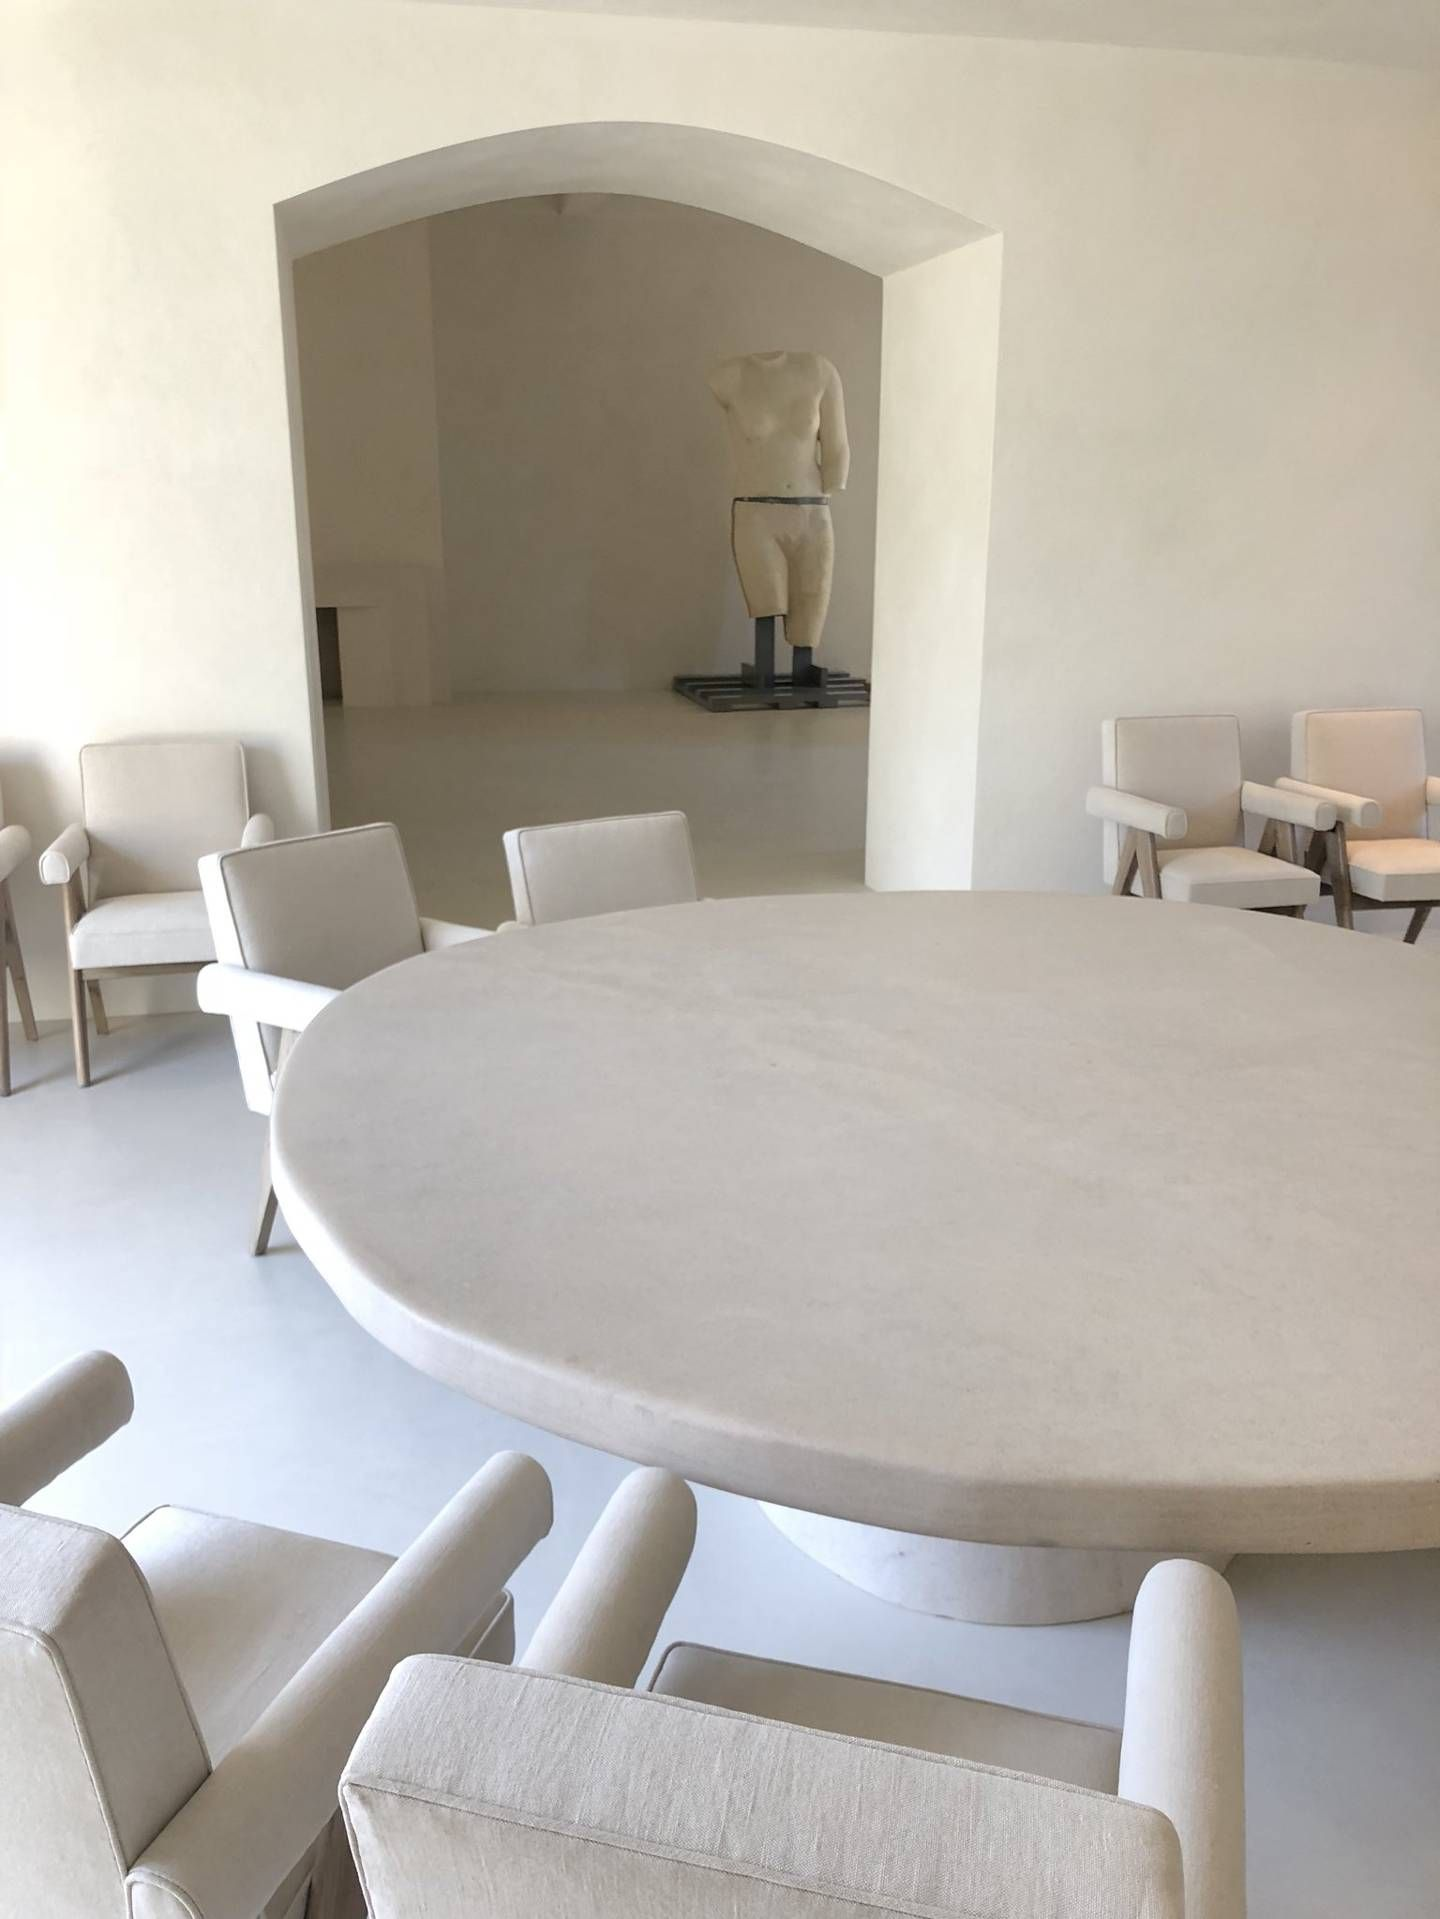 A First Look At Kanye West S Minimal La House Designed By Axel Vervoordt West Home Kim House Kim And Kanye House